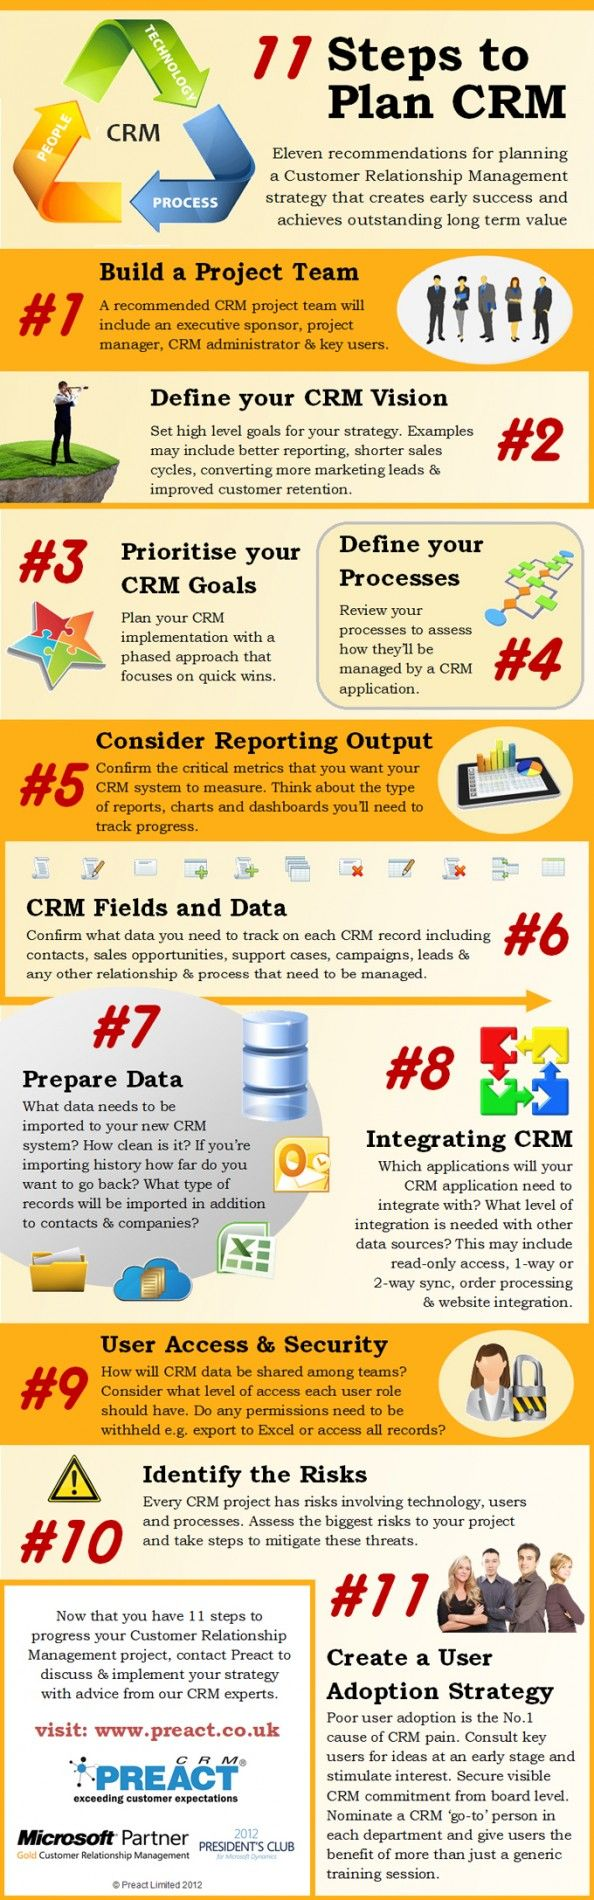 11 steps to CRM plan #infographic Learn more about Internet Marketing with #PurposeAdvertising